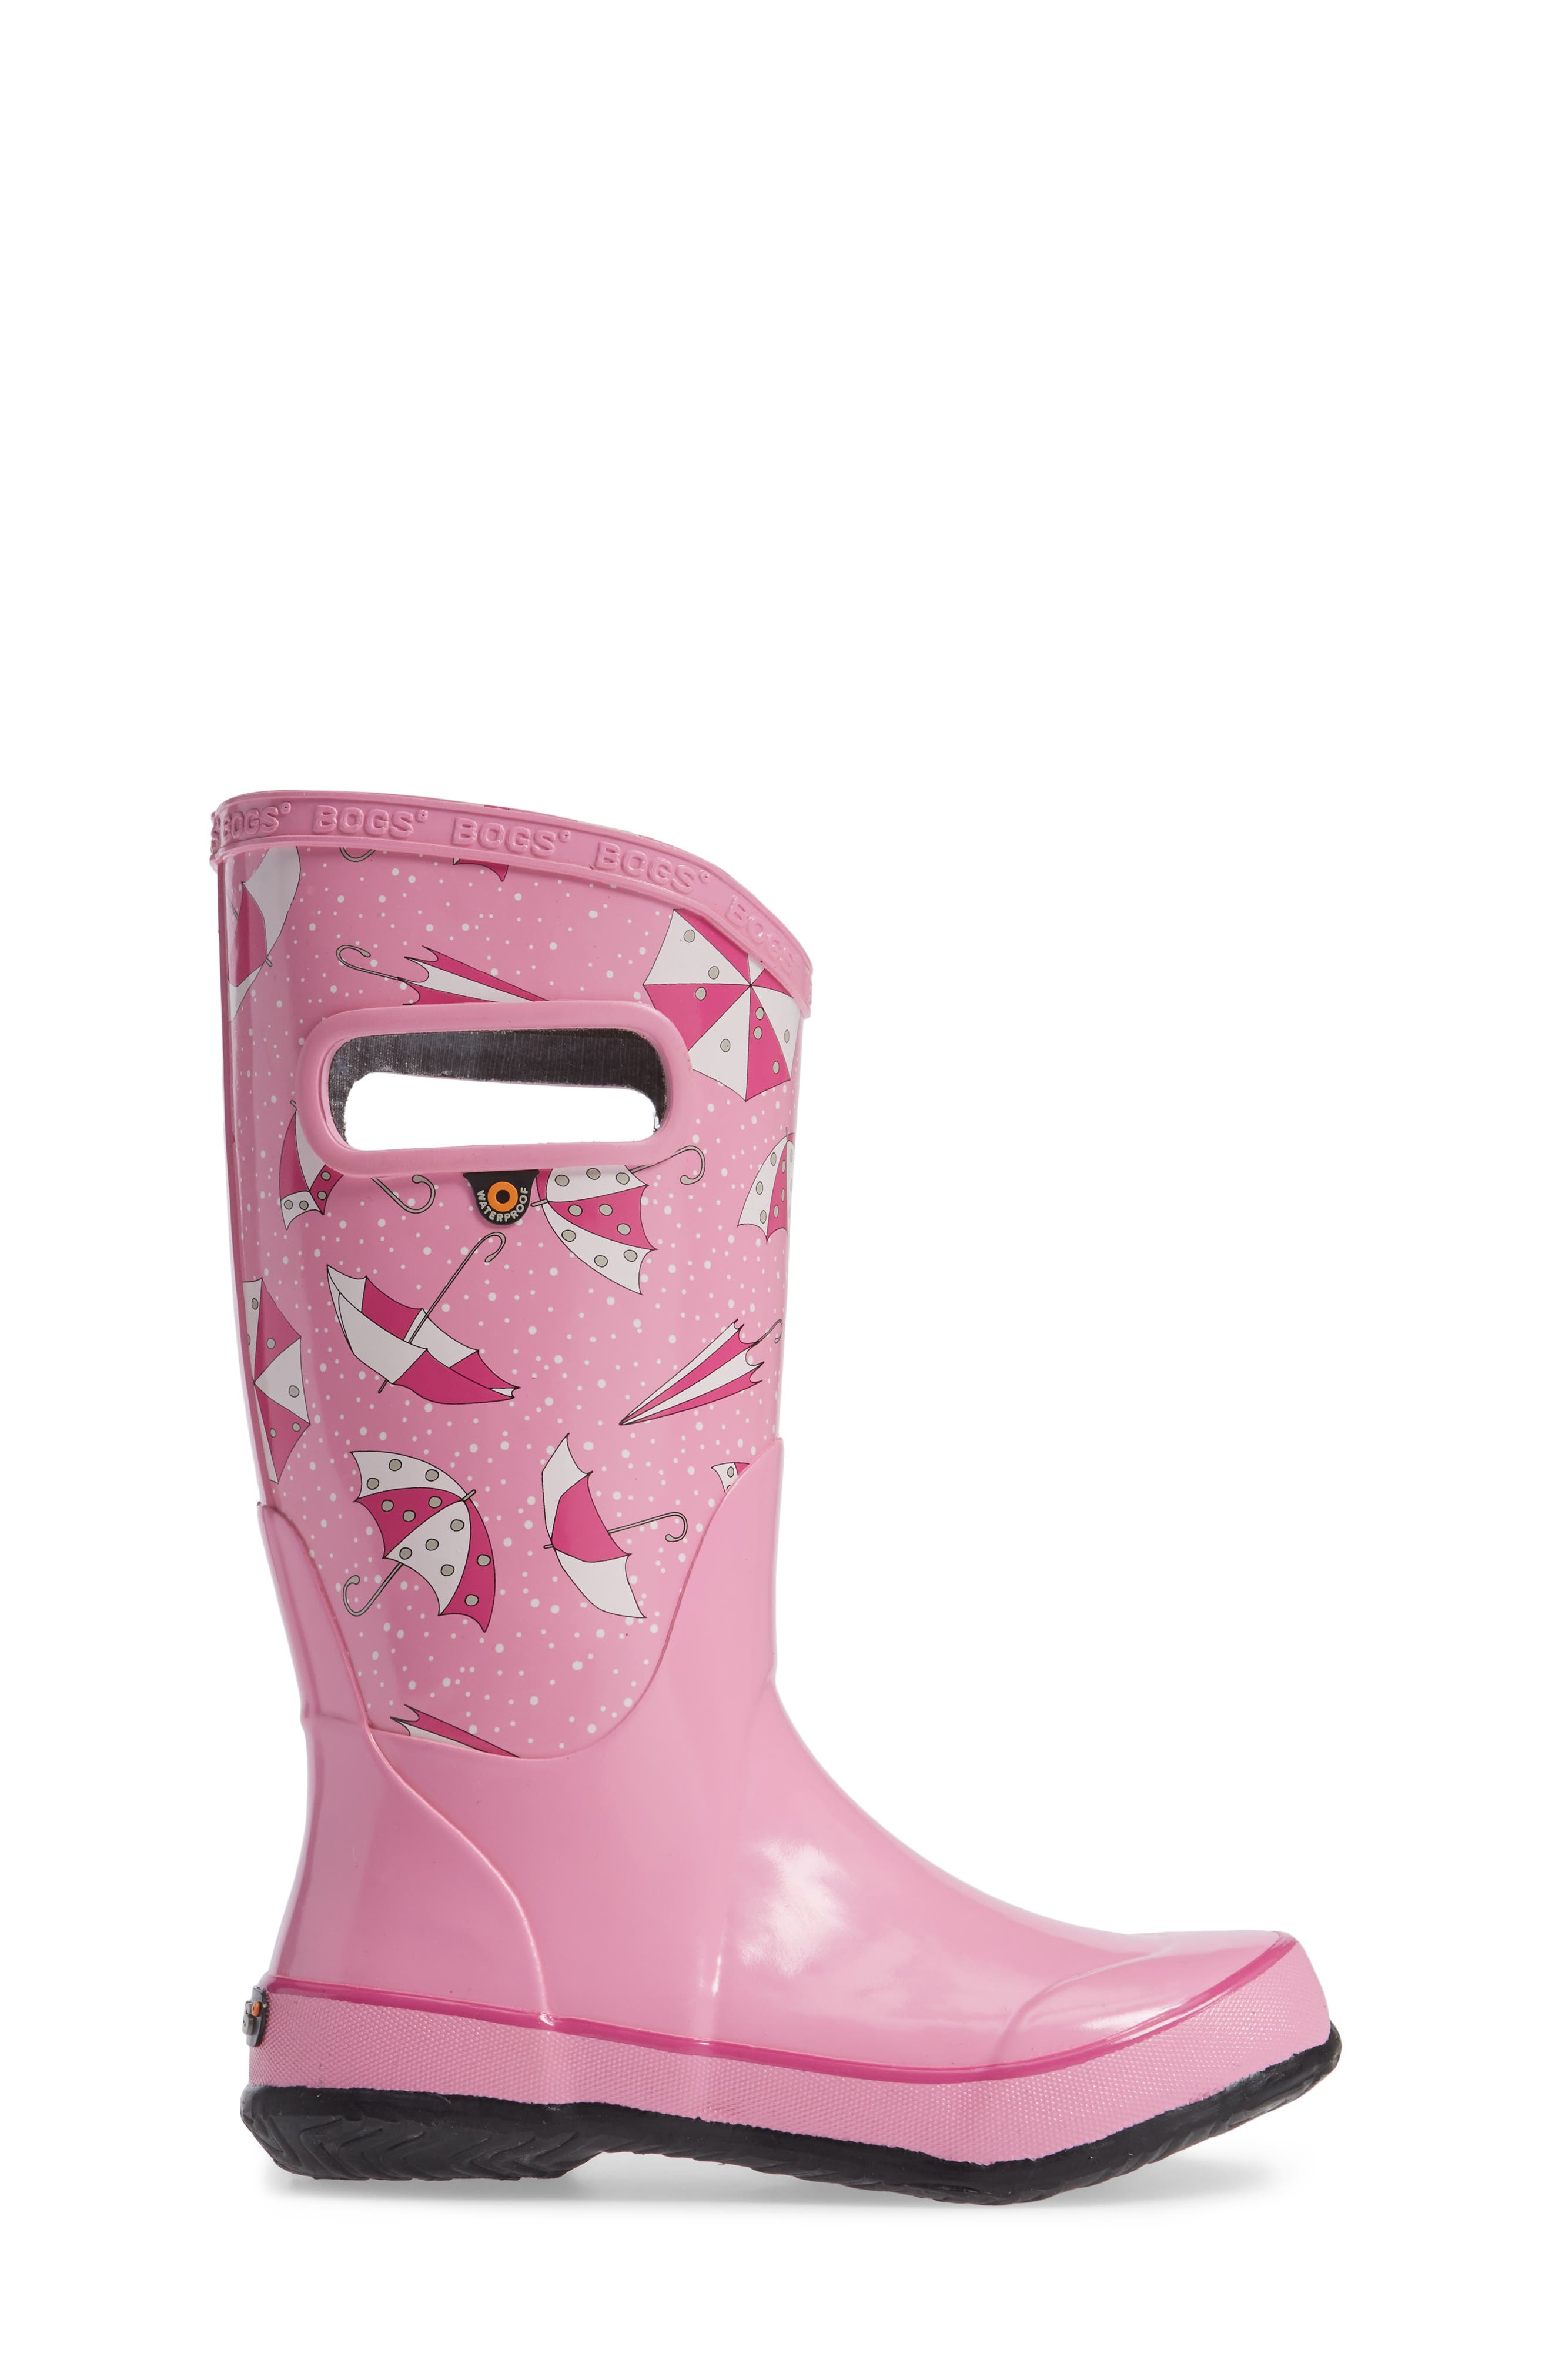 Umbrellas Waterproof Rubber Rain Boot,                             Alternate thumbnail 5, color,                             Pink Multi